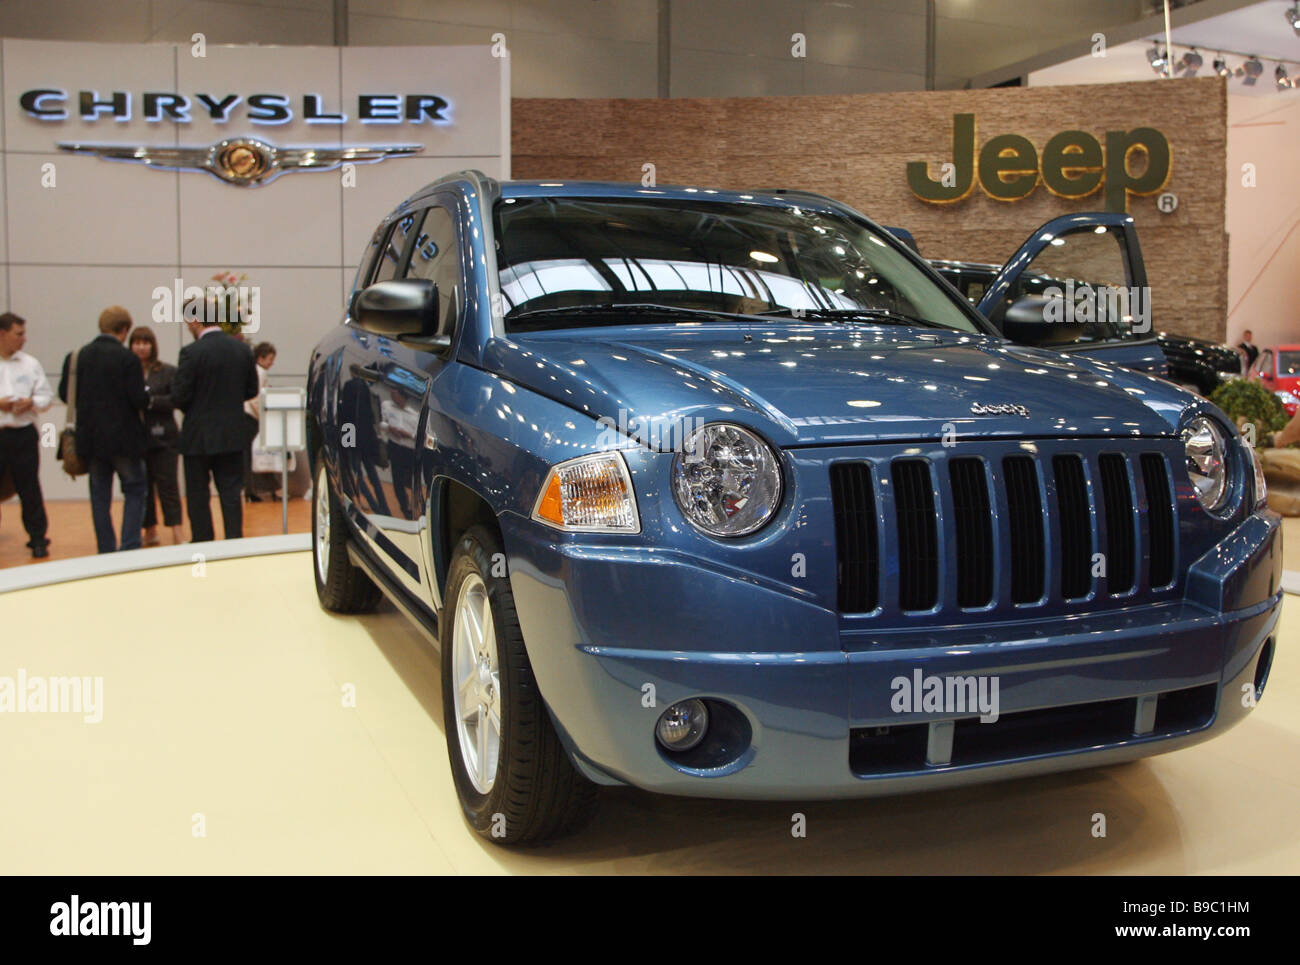 used chrysler ram dealer located sport cars rio wrangler dodge vista jeep s unlimited new